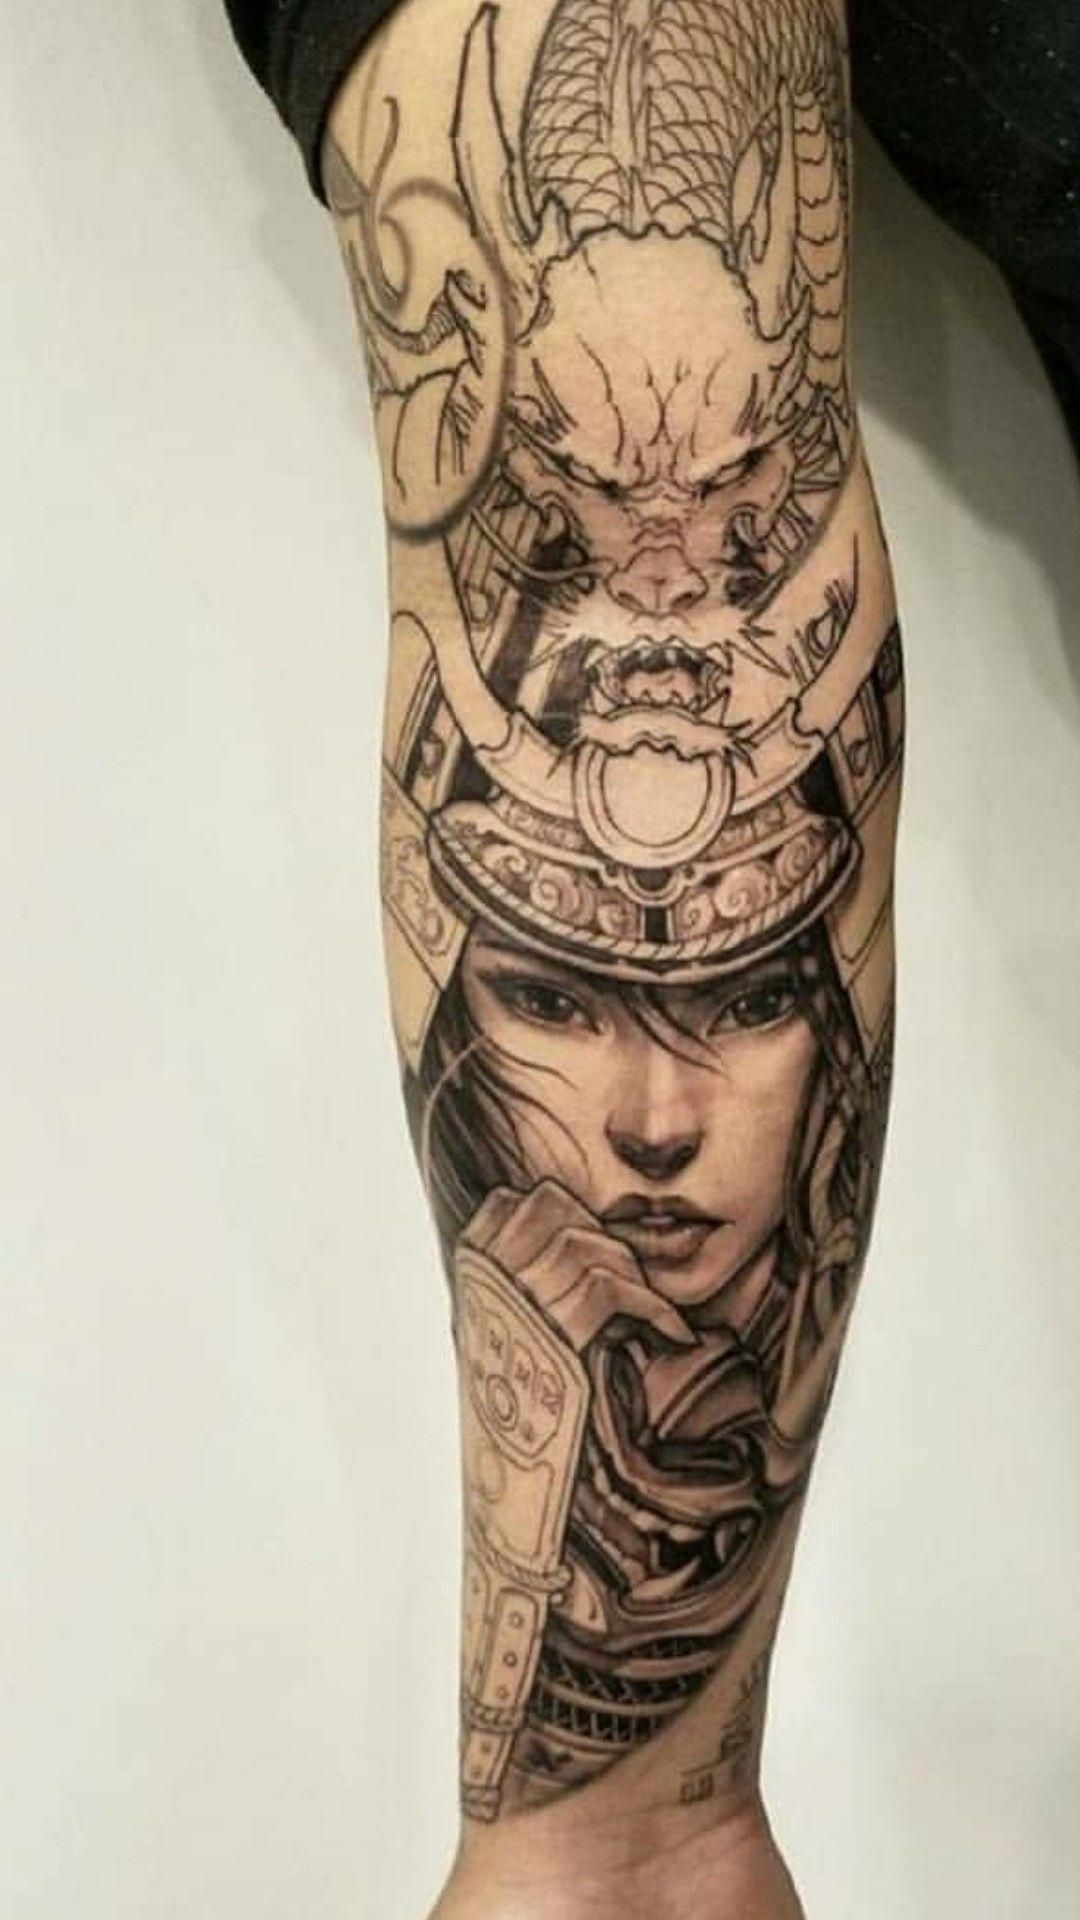 Japanese Tattoos Designs And Meanings Japanesetattoos Japanese Tattoo Japanese Tattoo Designs Japanese Sleeve Tattoos